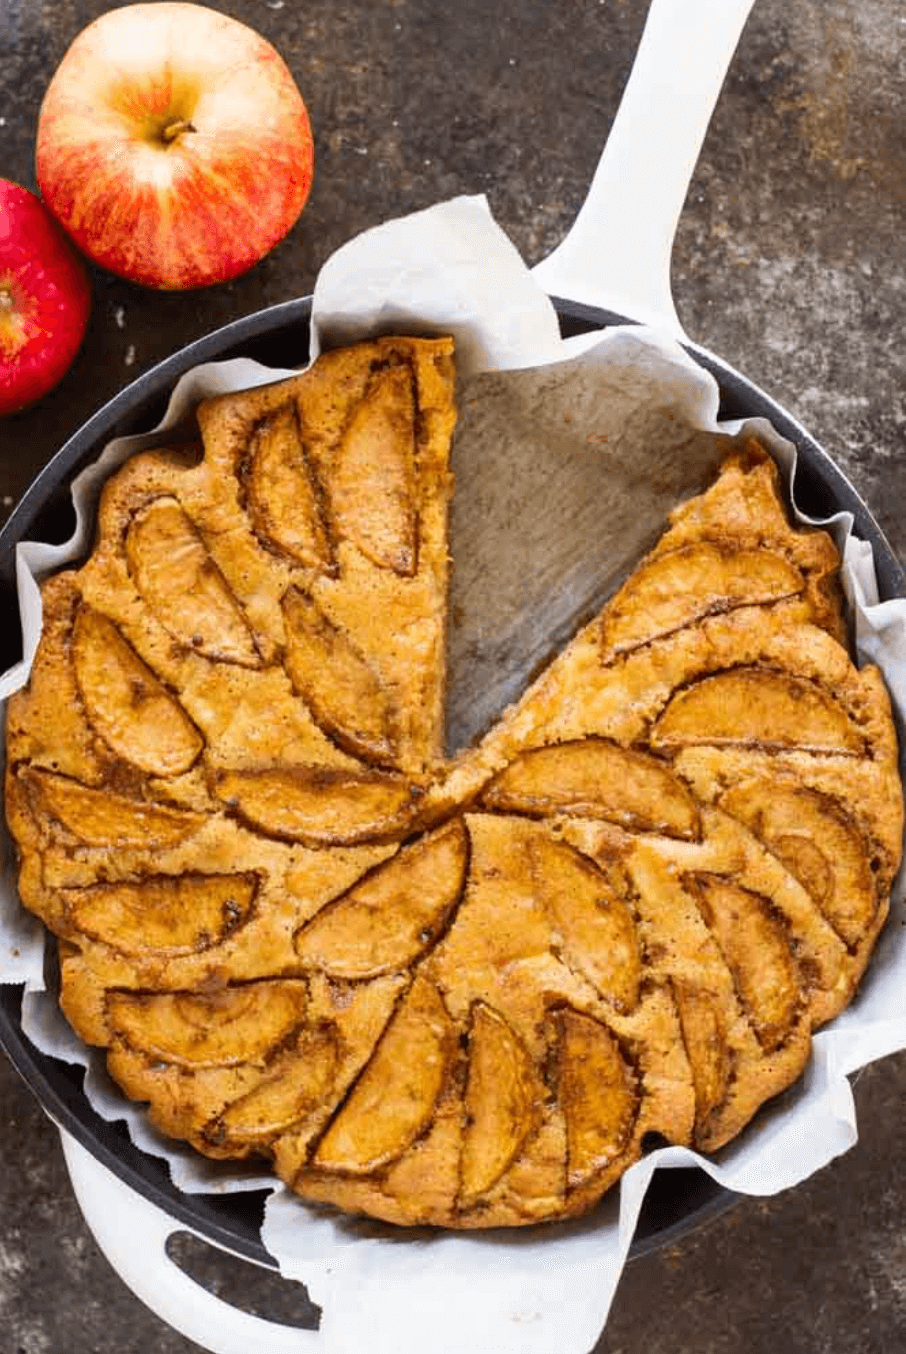 cardamon apple cake in skillet with one slice cut out